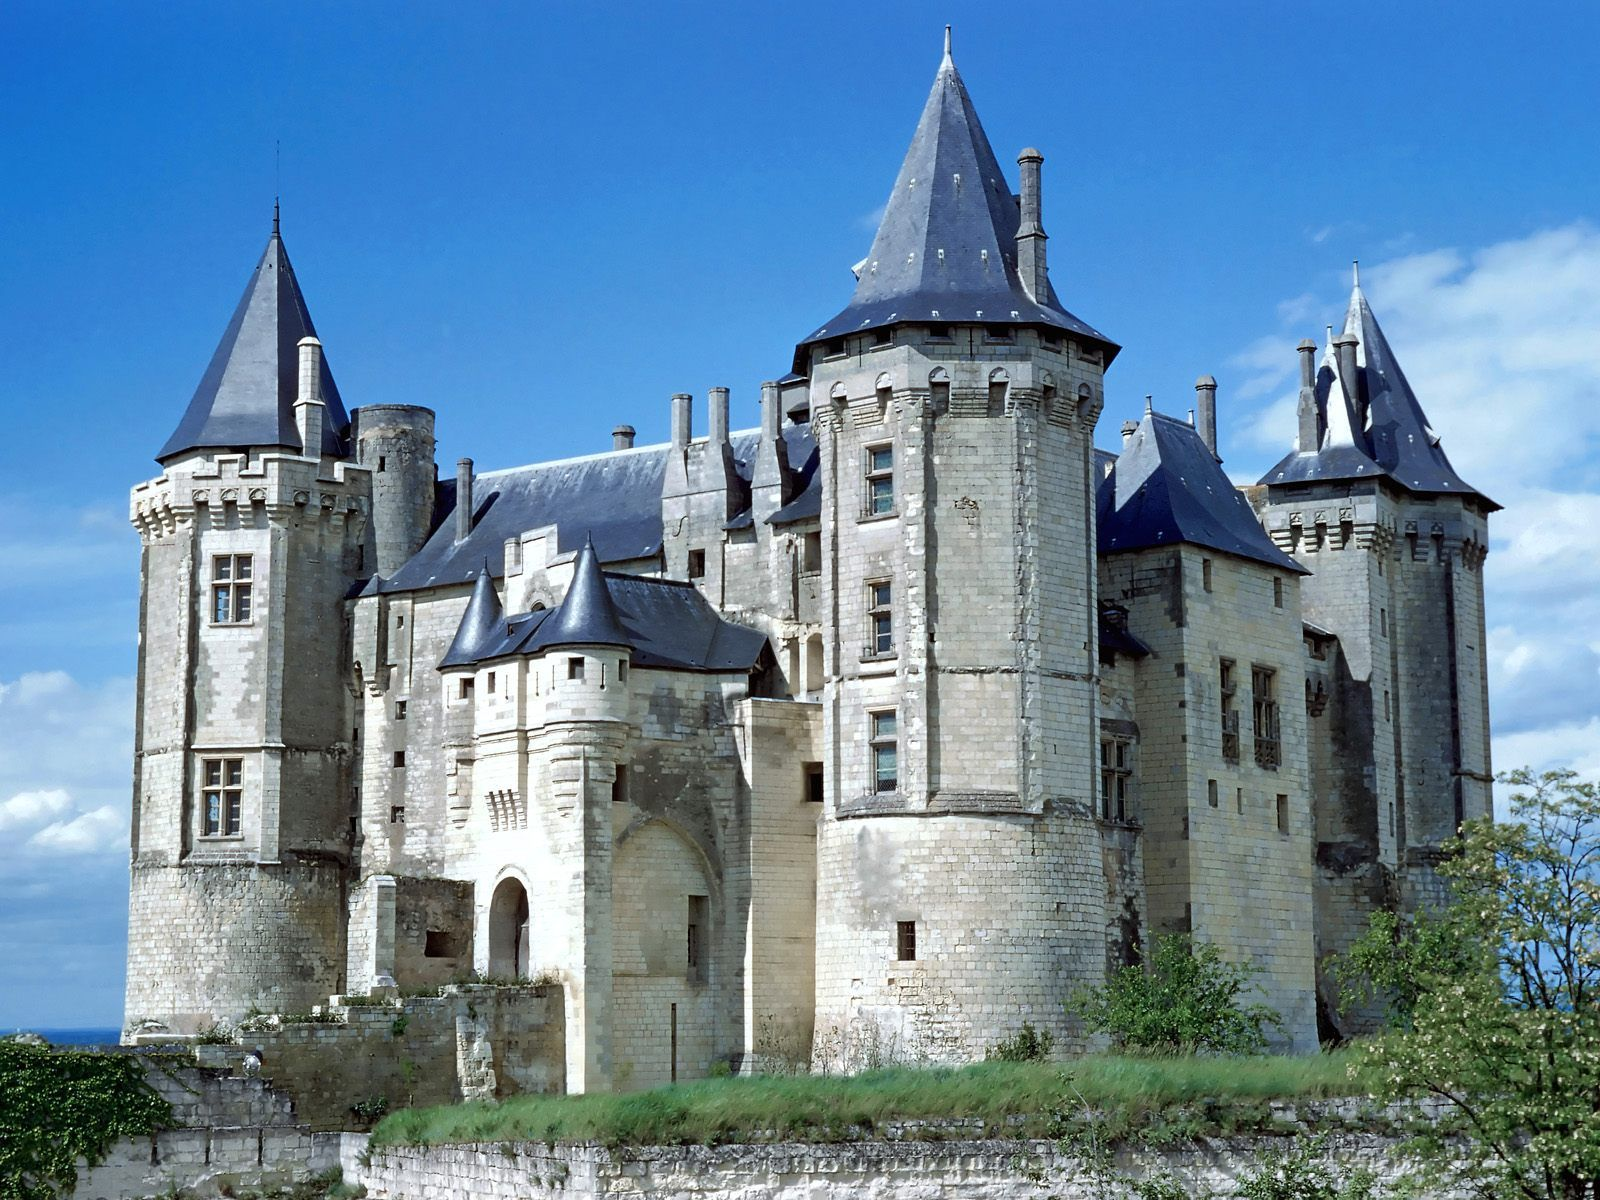 Saumur castle france the château de saumur originally built as a castle and later developed as a château is located in the french town of saumur